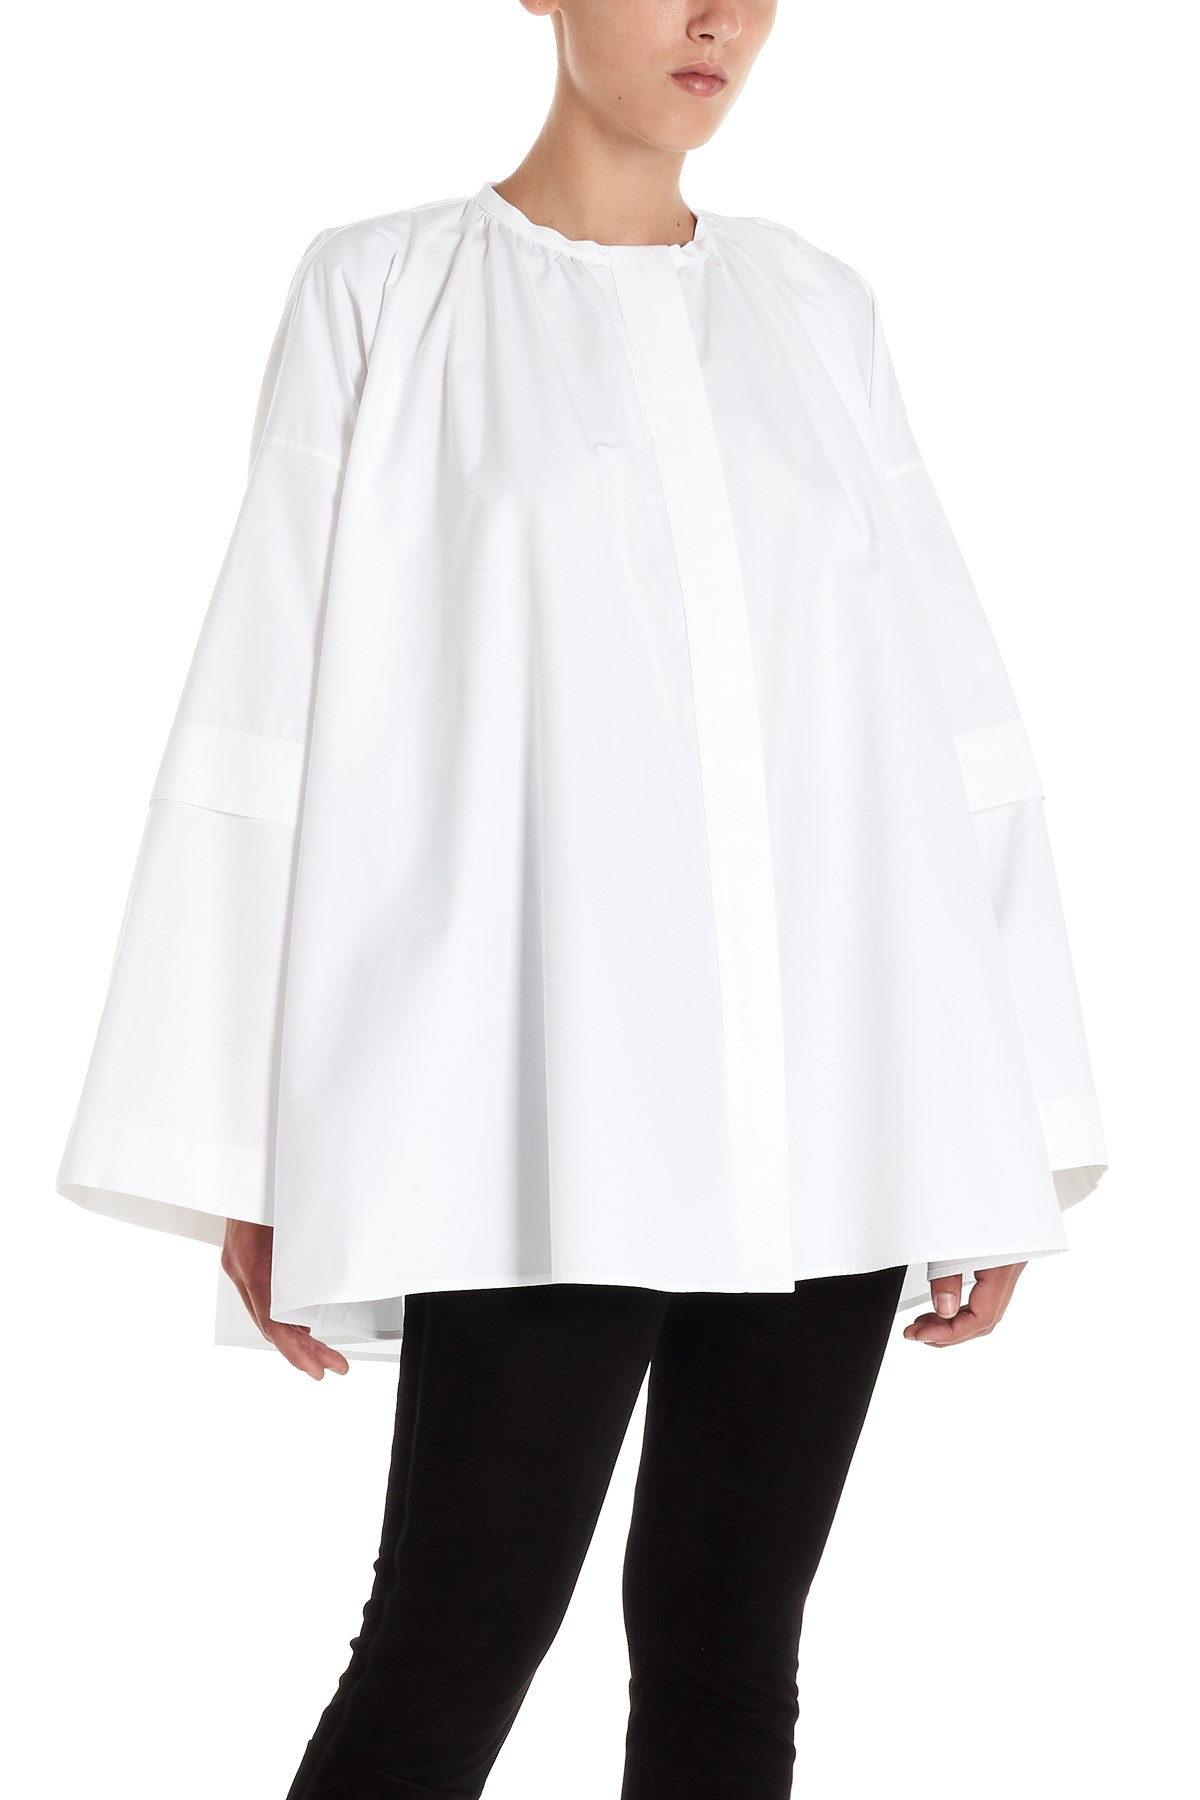 192f06fd5edfba jil sander 'Lilium' shirt available on julian-fashion.com - 97706